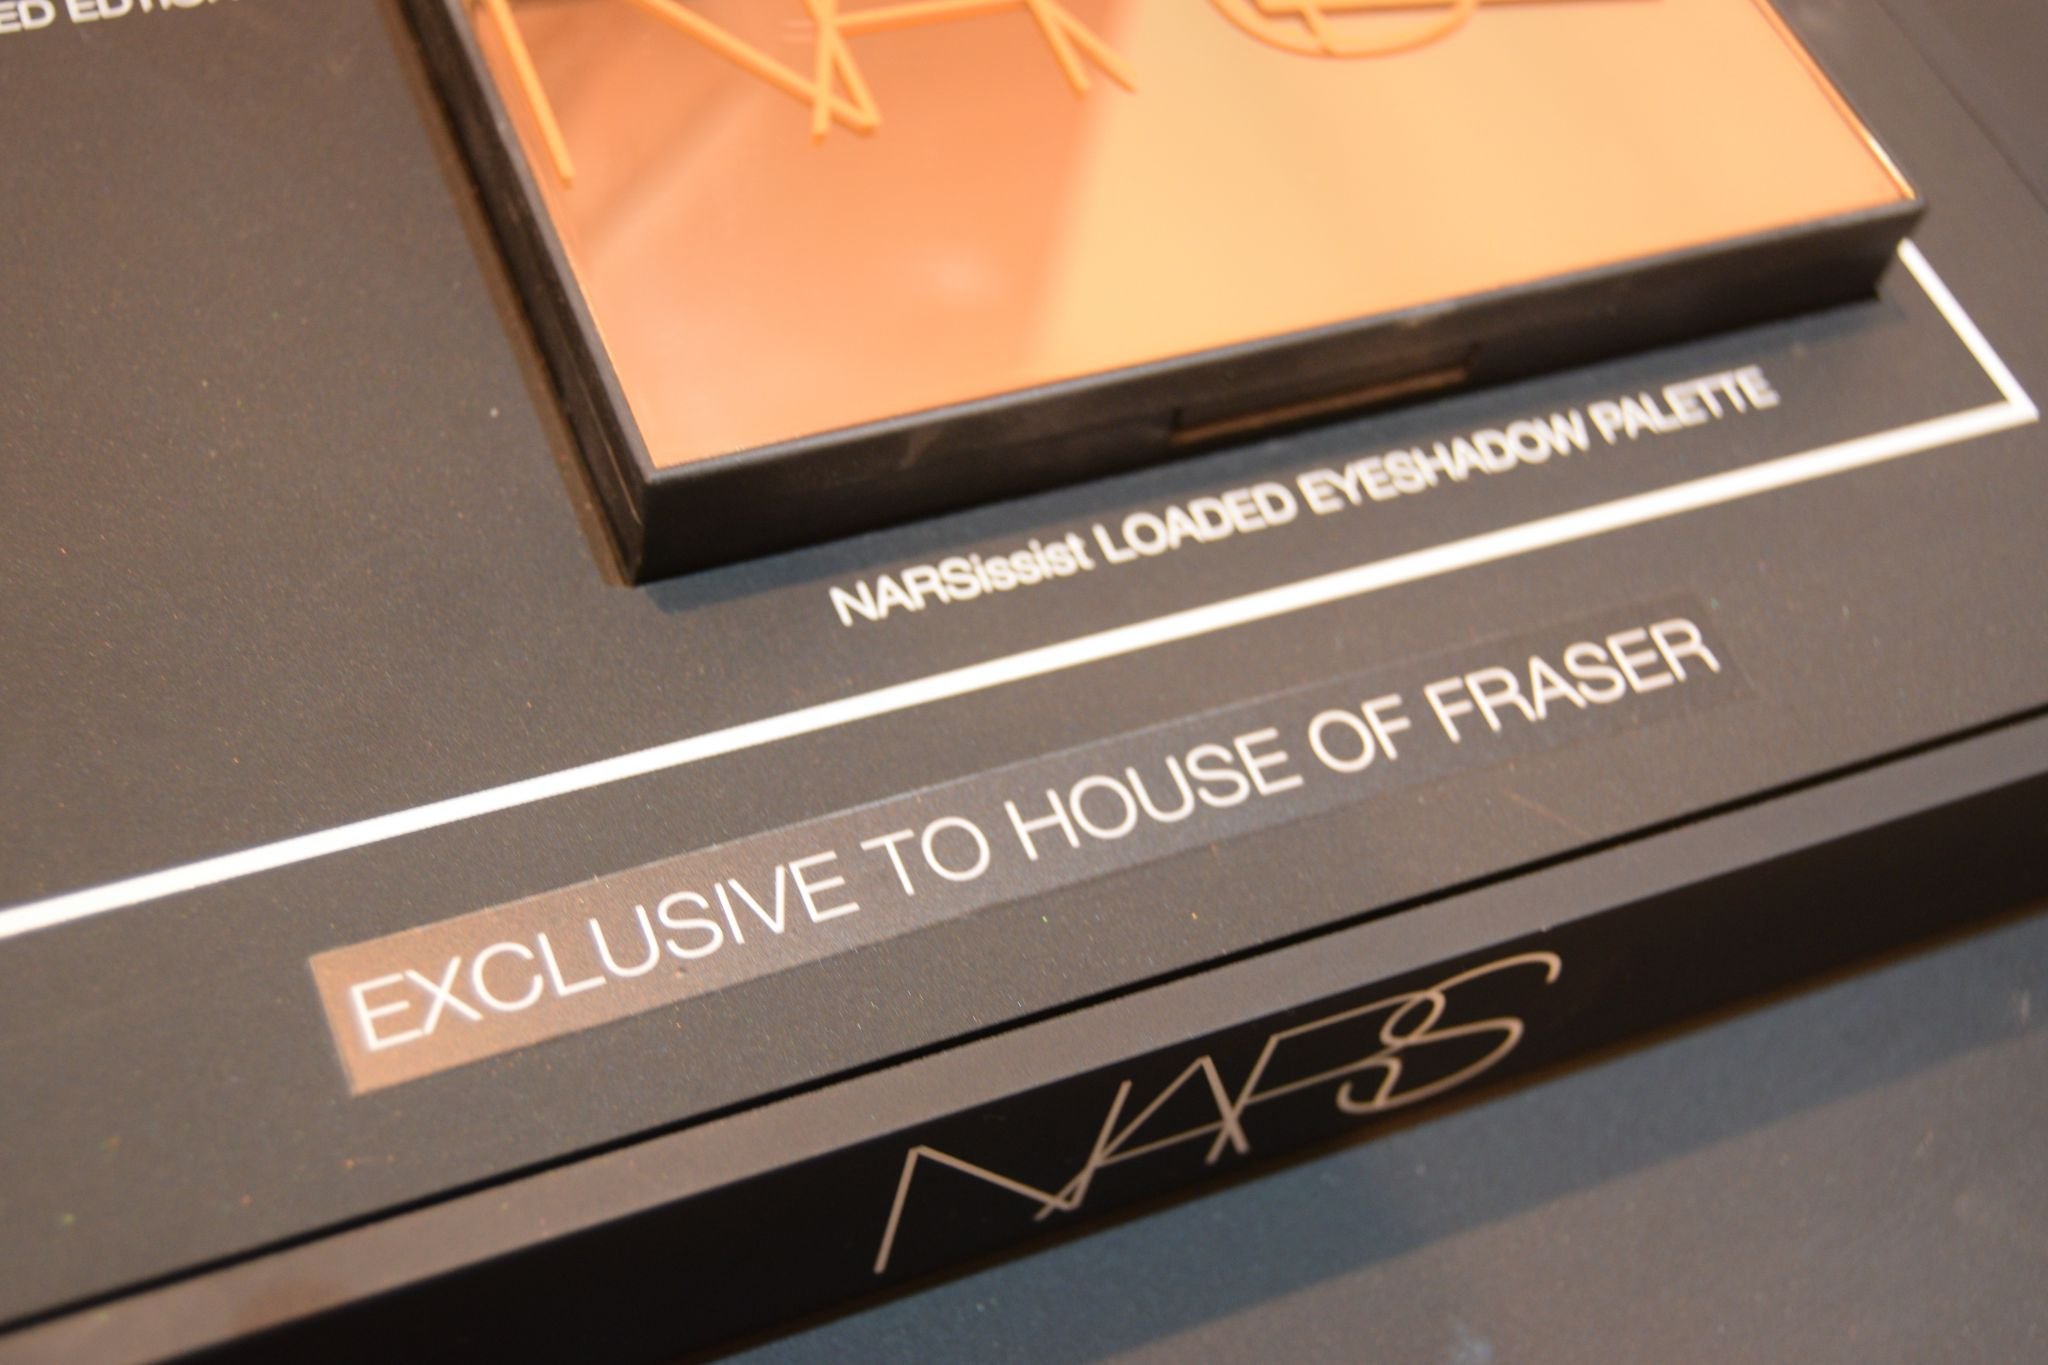 DSC 2063 1440x960 - House of Fraser EXCLUSIVE: Nars Loaded Palette